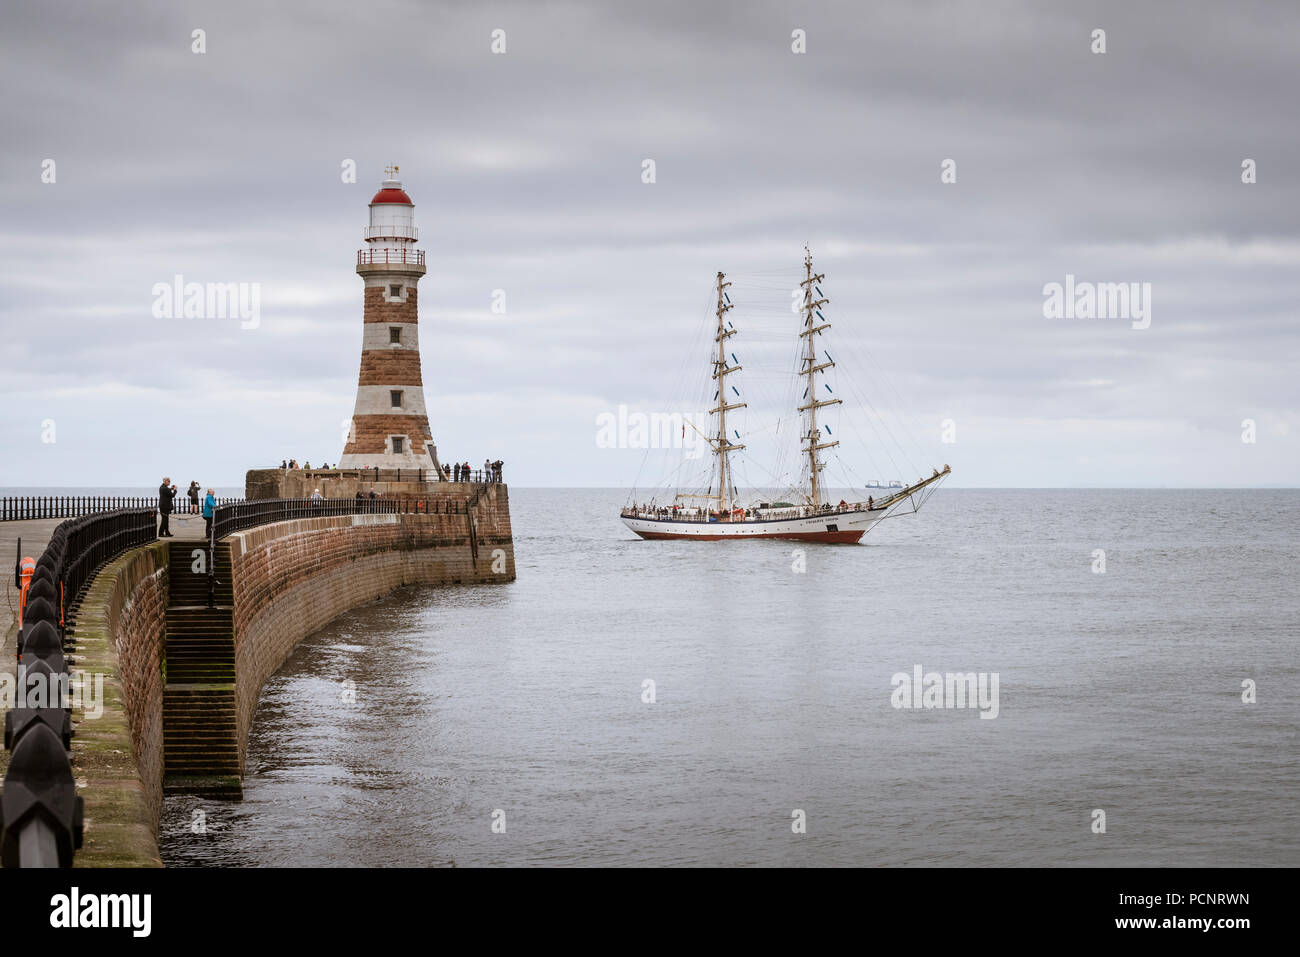 Sailing ship Frydryk Chopin approaching the Roker lighthouse on the Sunderland stretch of the 2018 Tall Ships Race - Stock Image